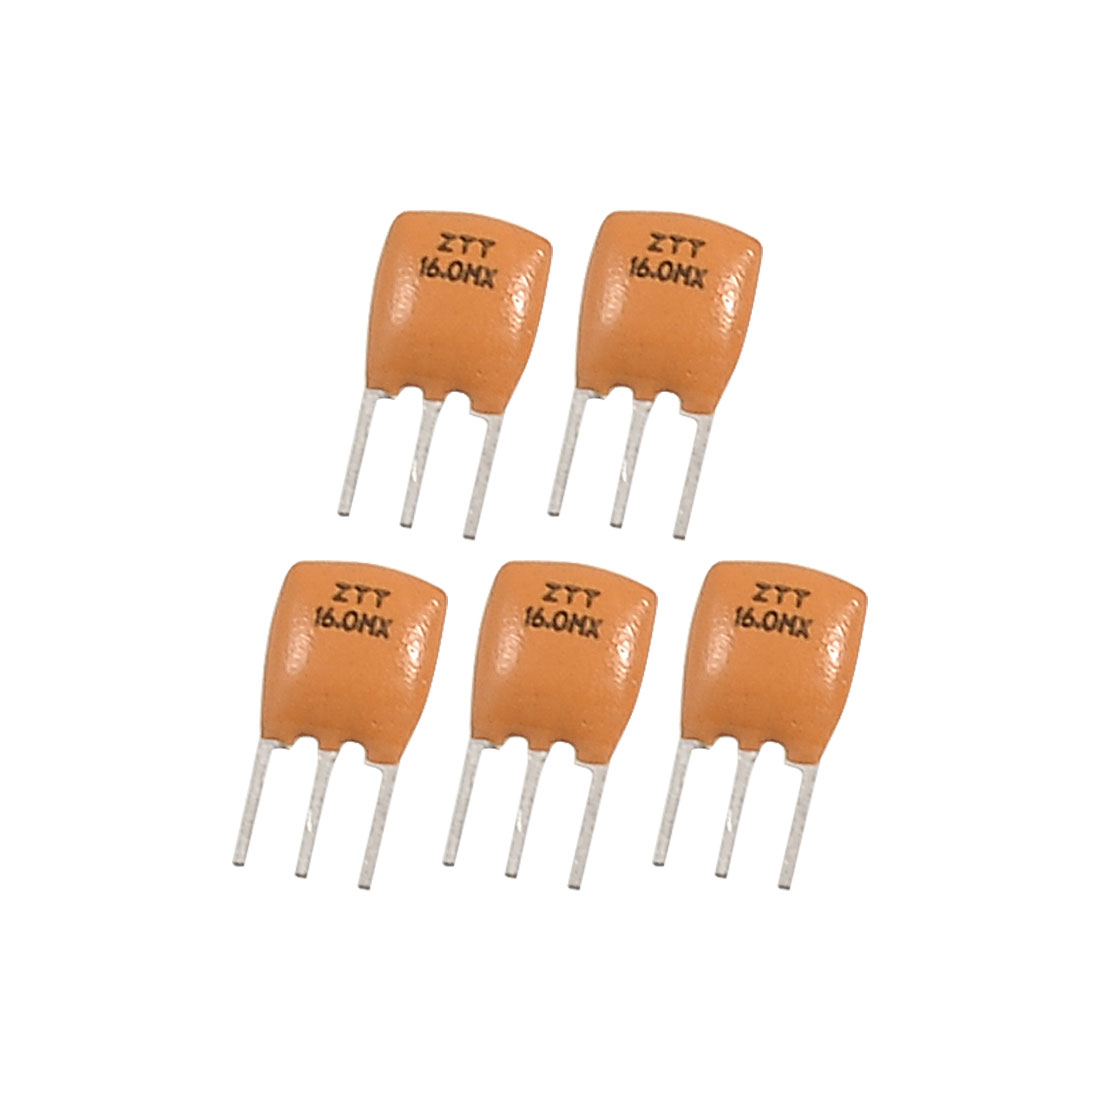 5 Pcs Radial Lead 16.000 MHz Ceramic Resonator 3 Pins ZTT Series